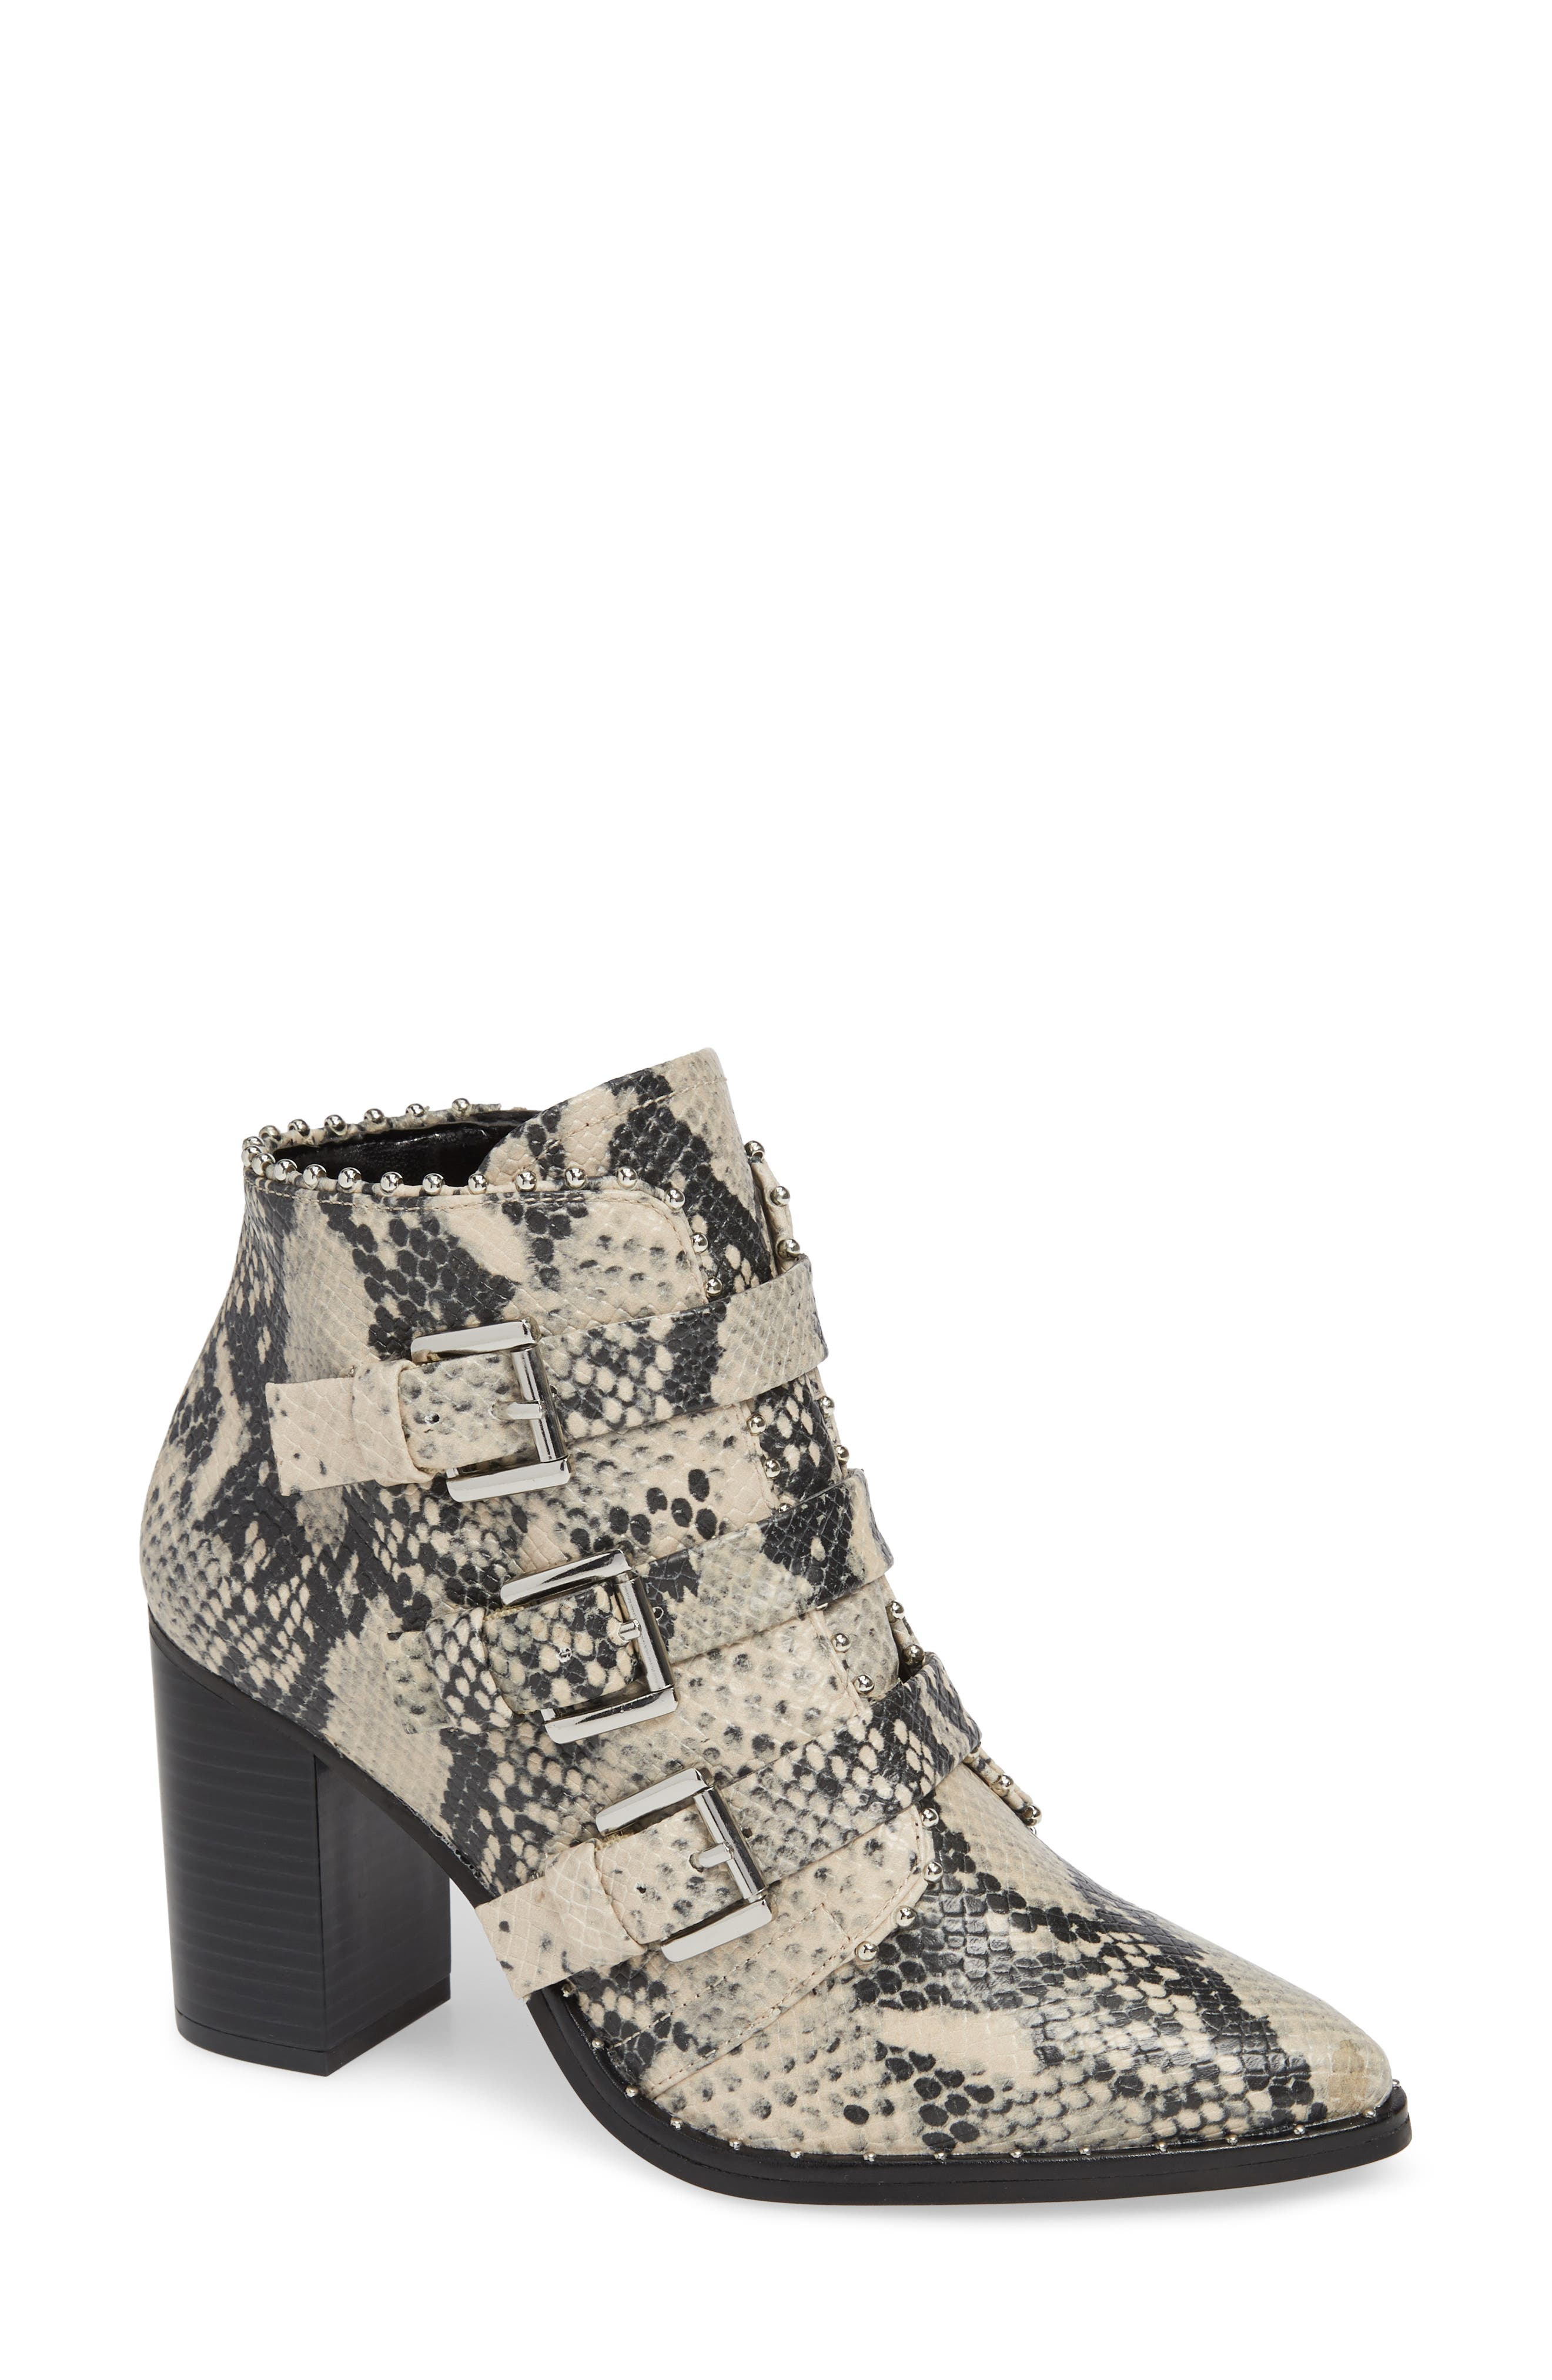 Humble Bootie in Natural Snake Print Leather